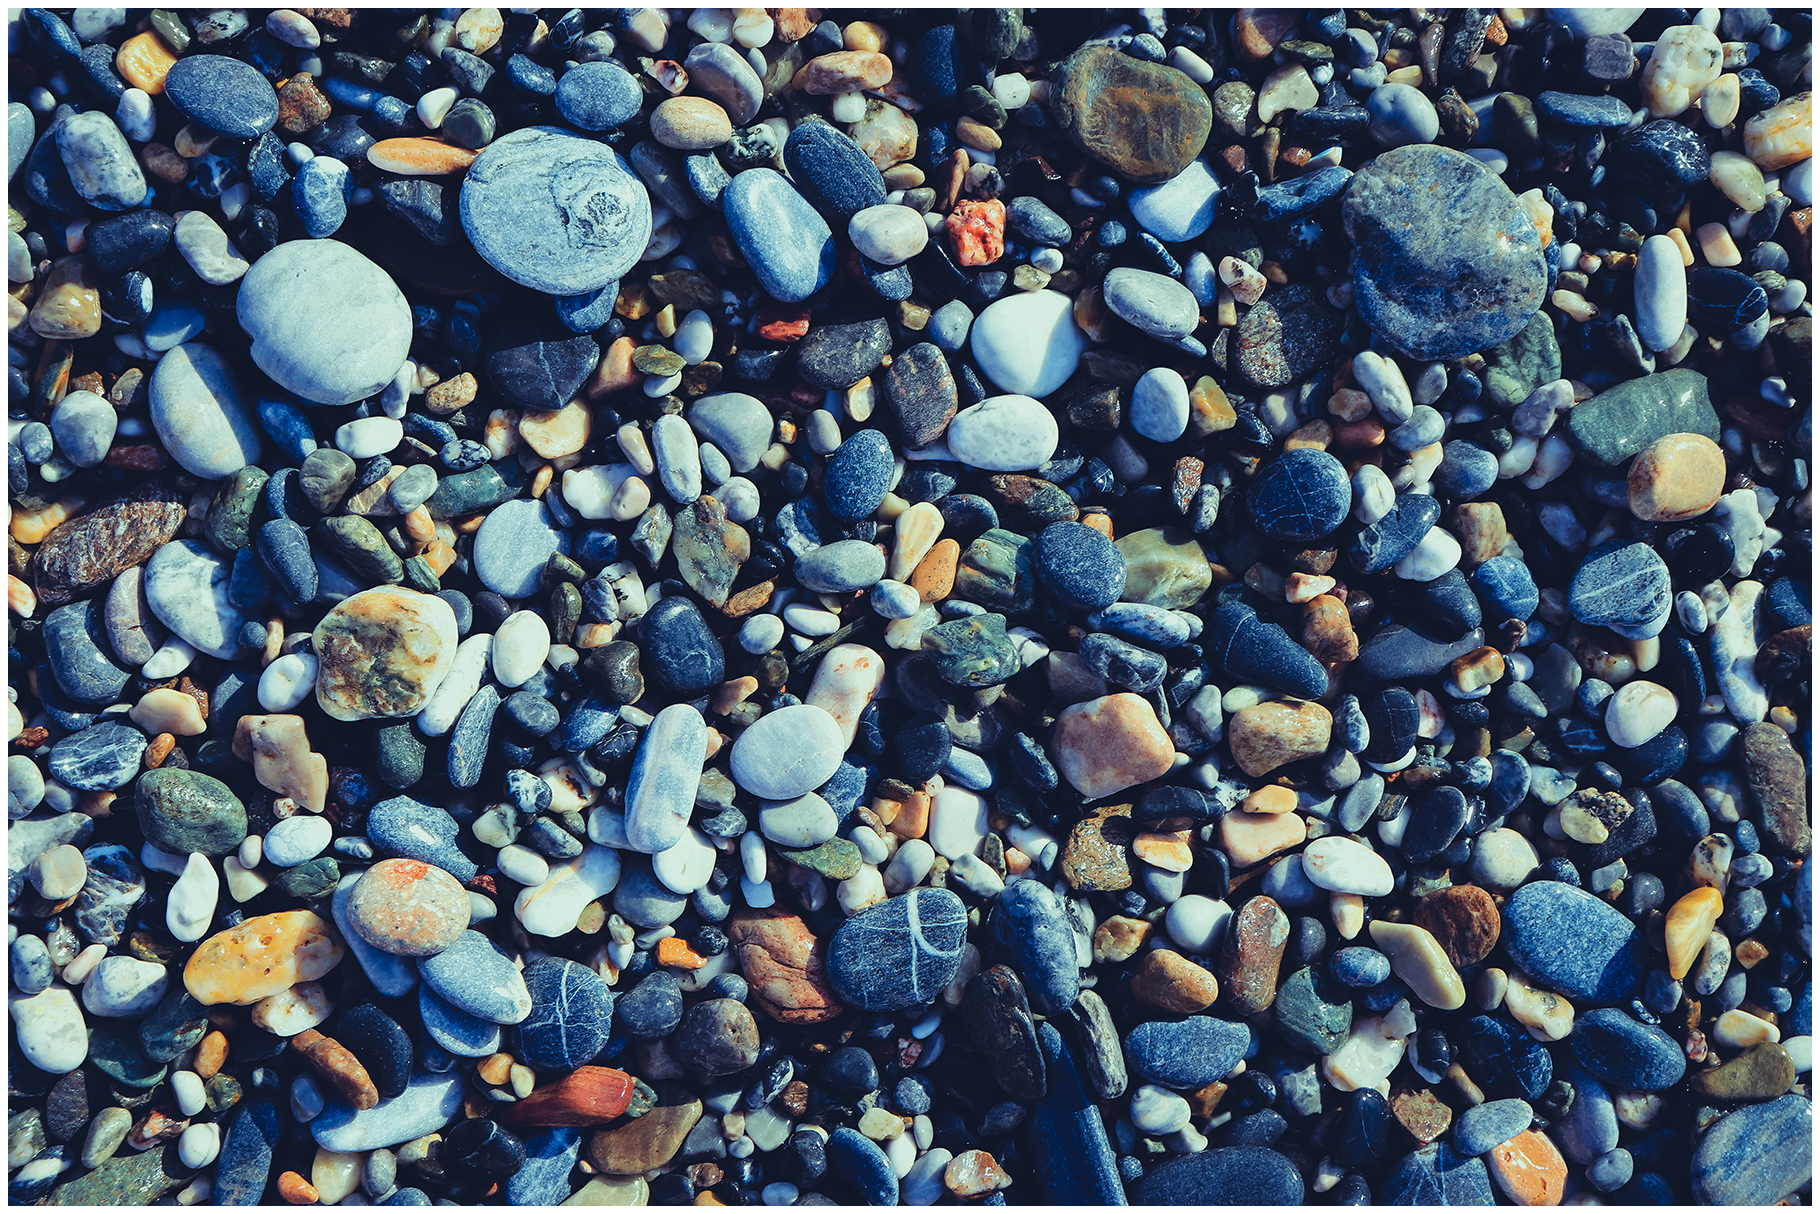 23 Pebble Background Textures example image 8